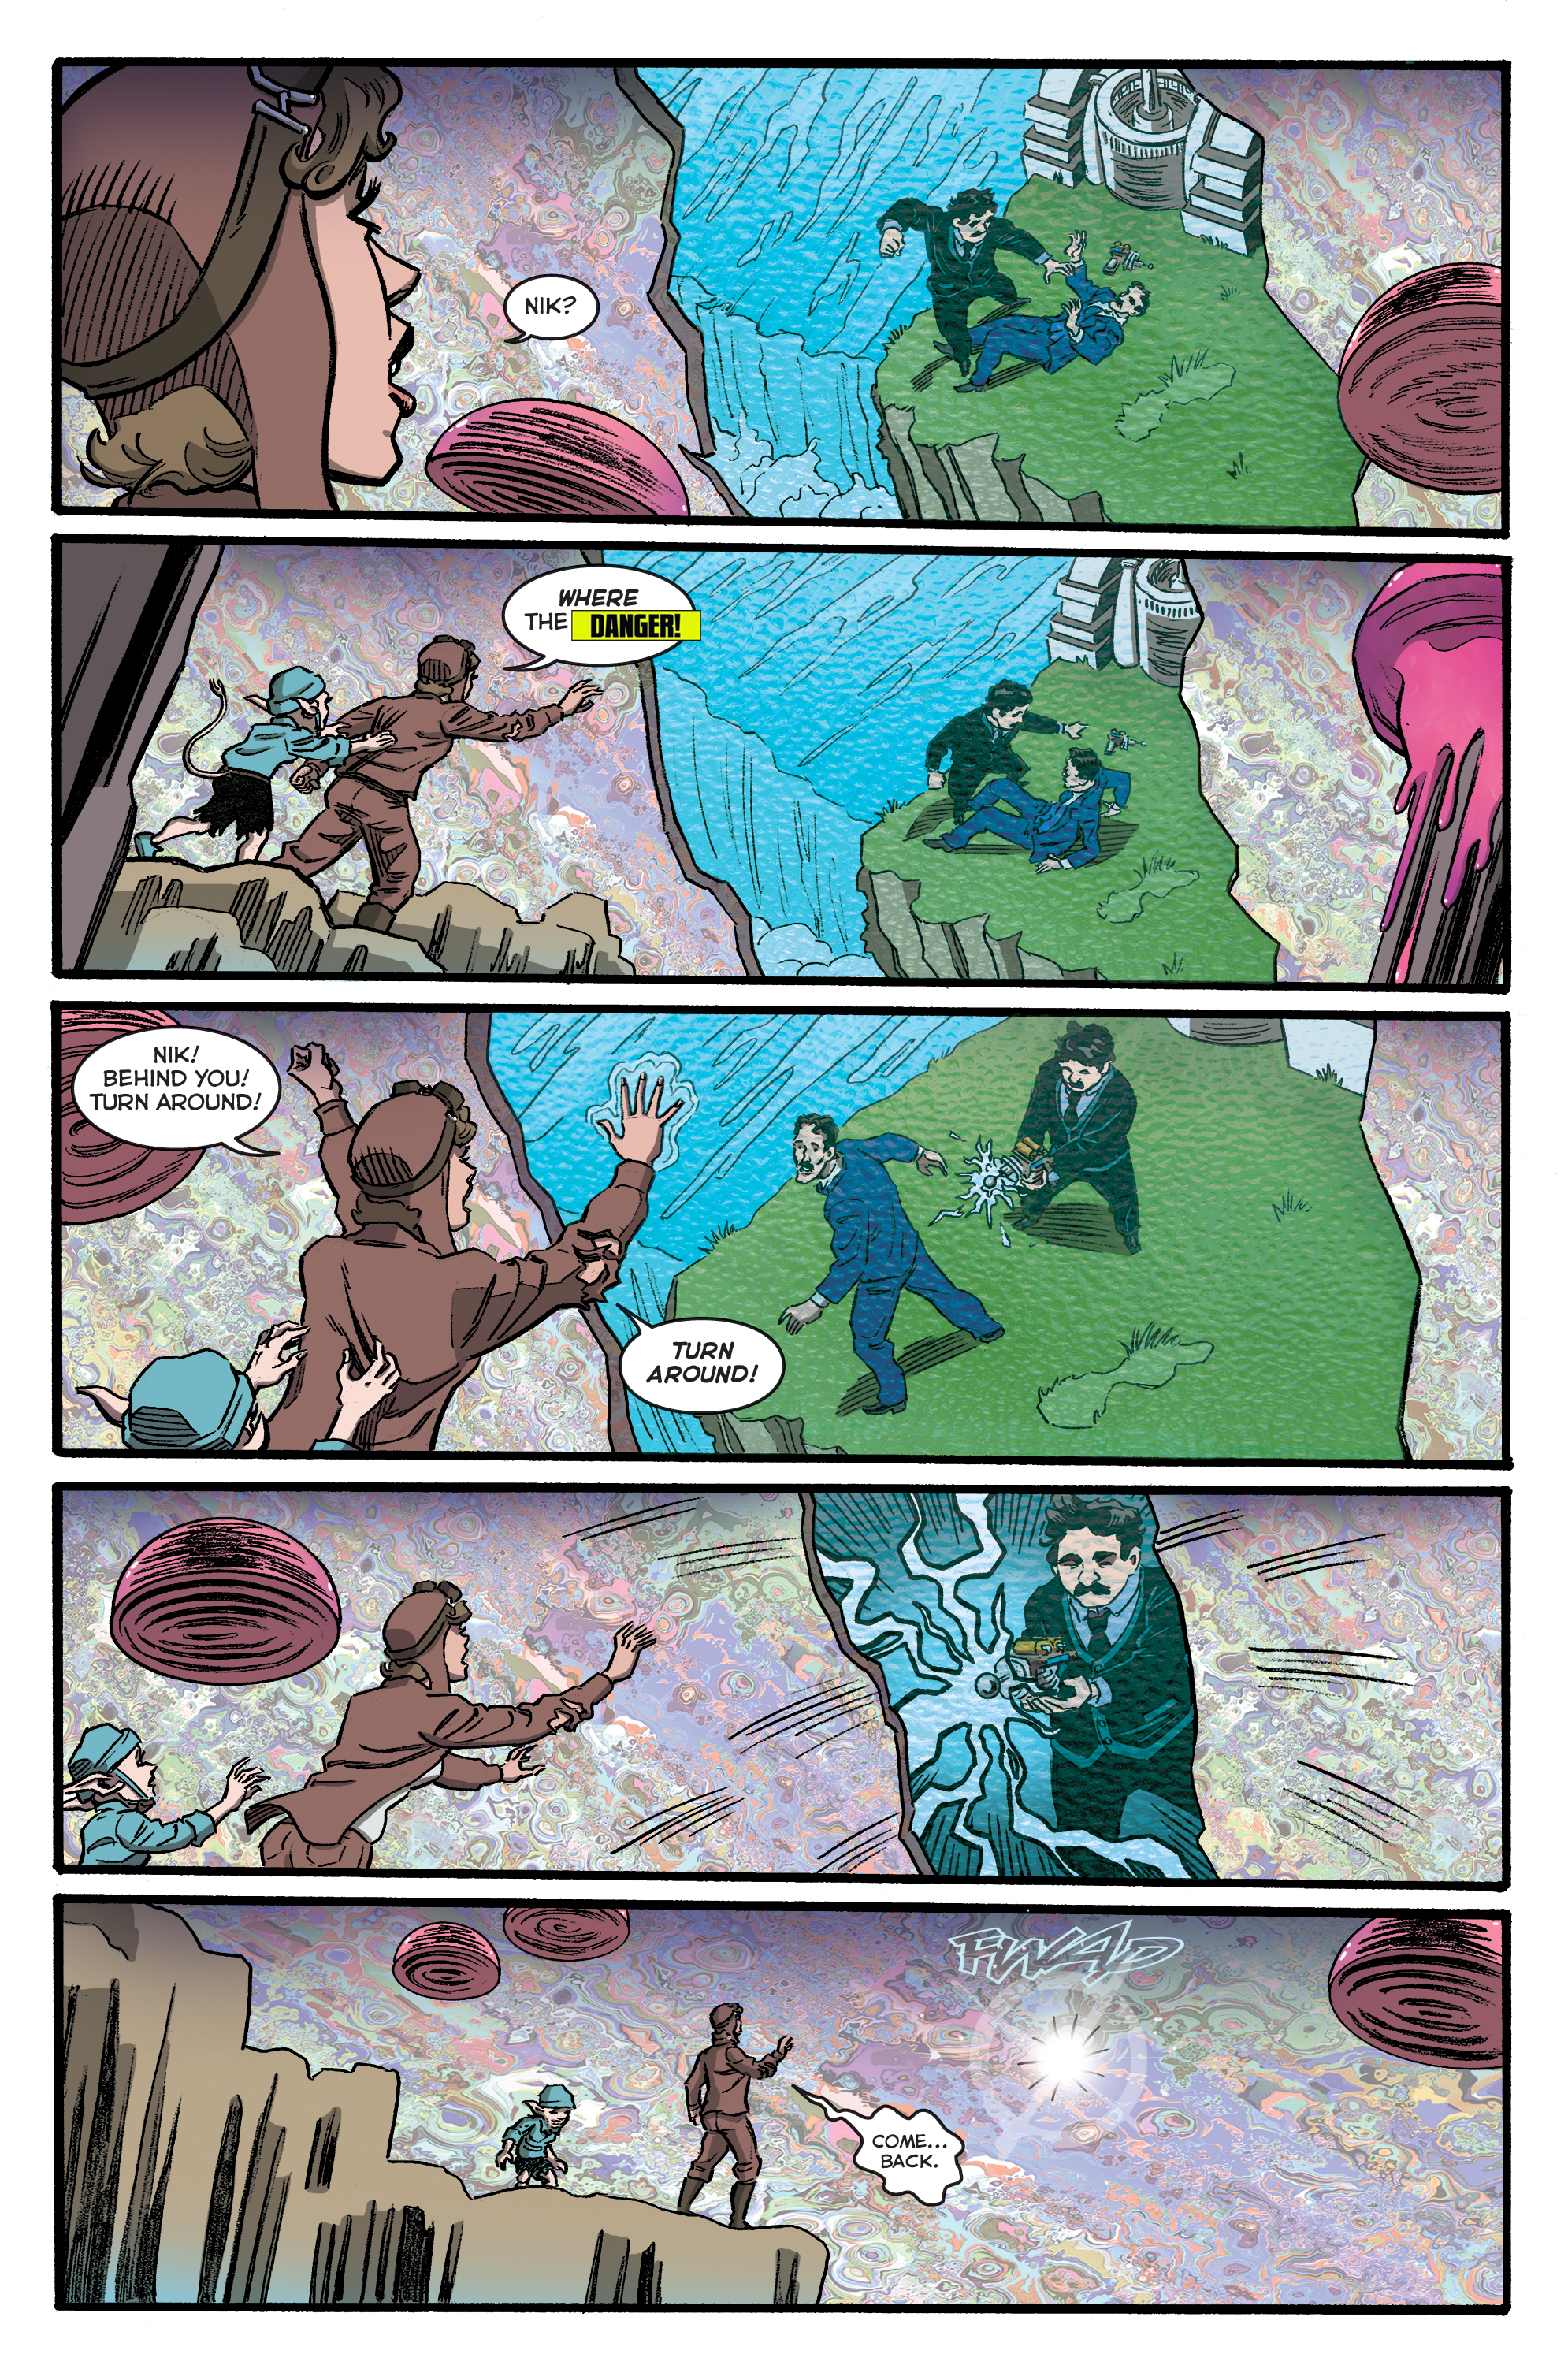 Herald Bundles of Joy #1 Page 4.jpg